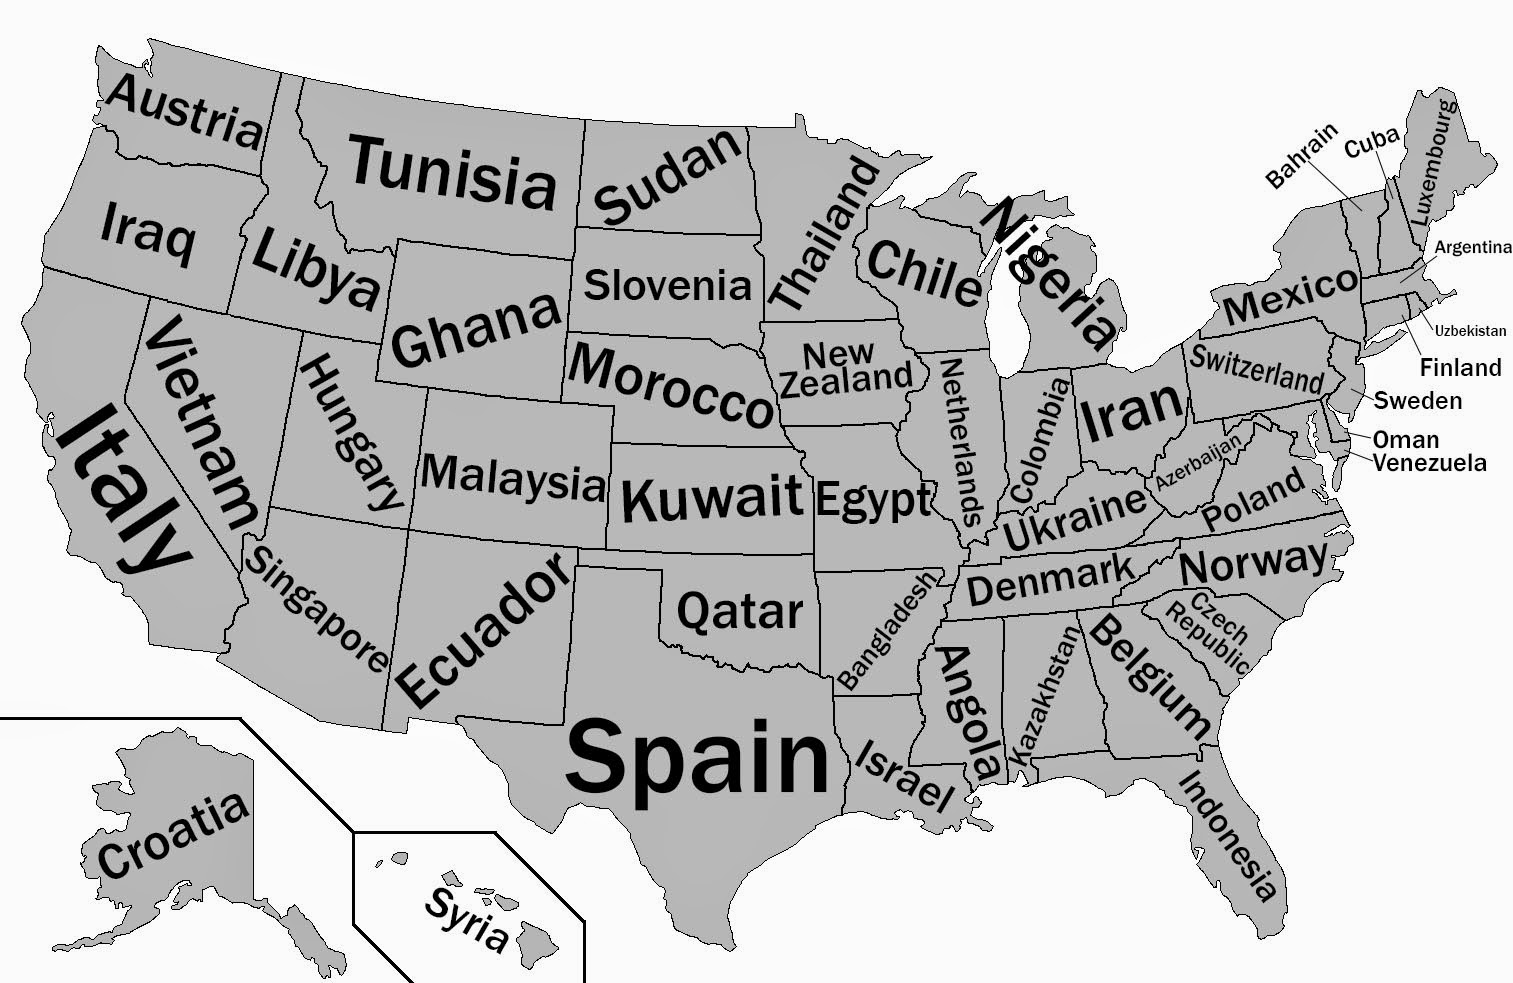 This map shows U.S. states labeled as countries with similar GDPs